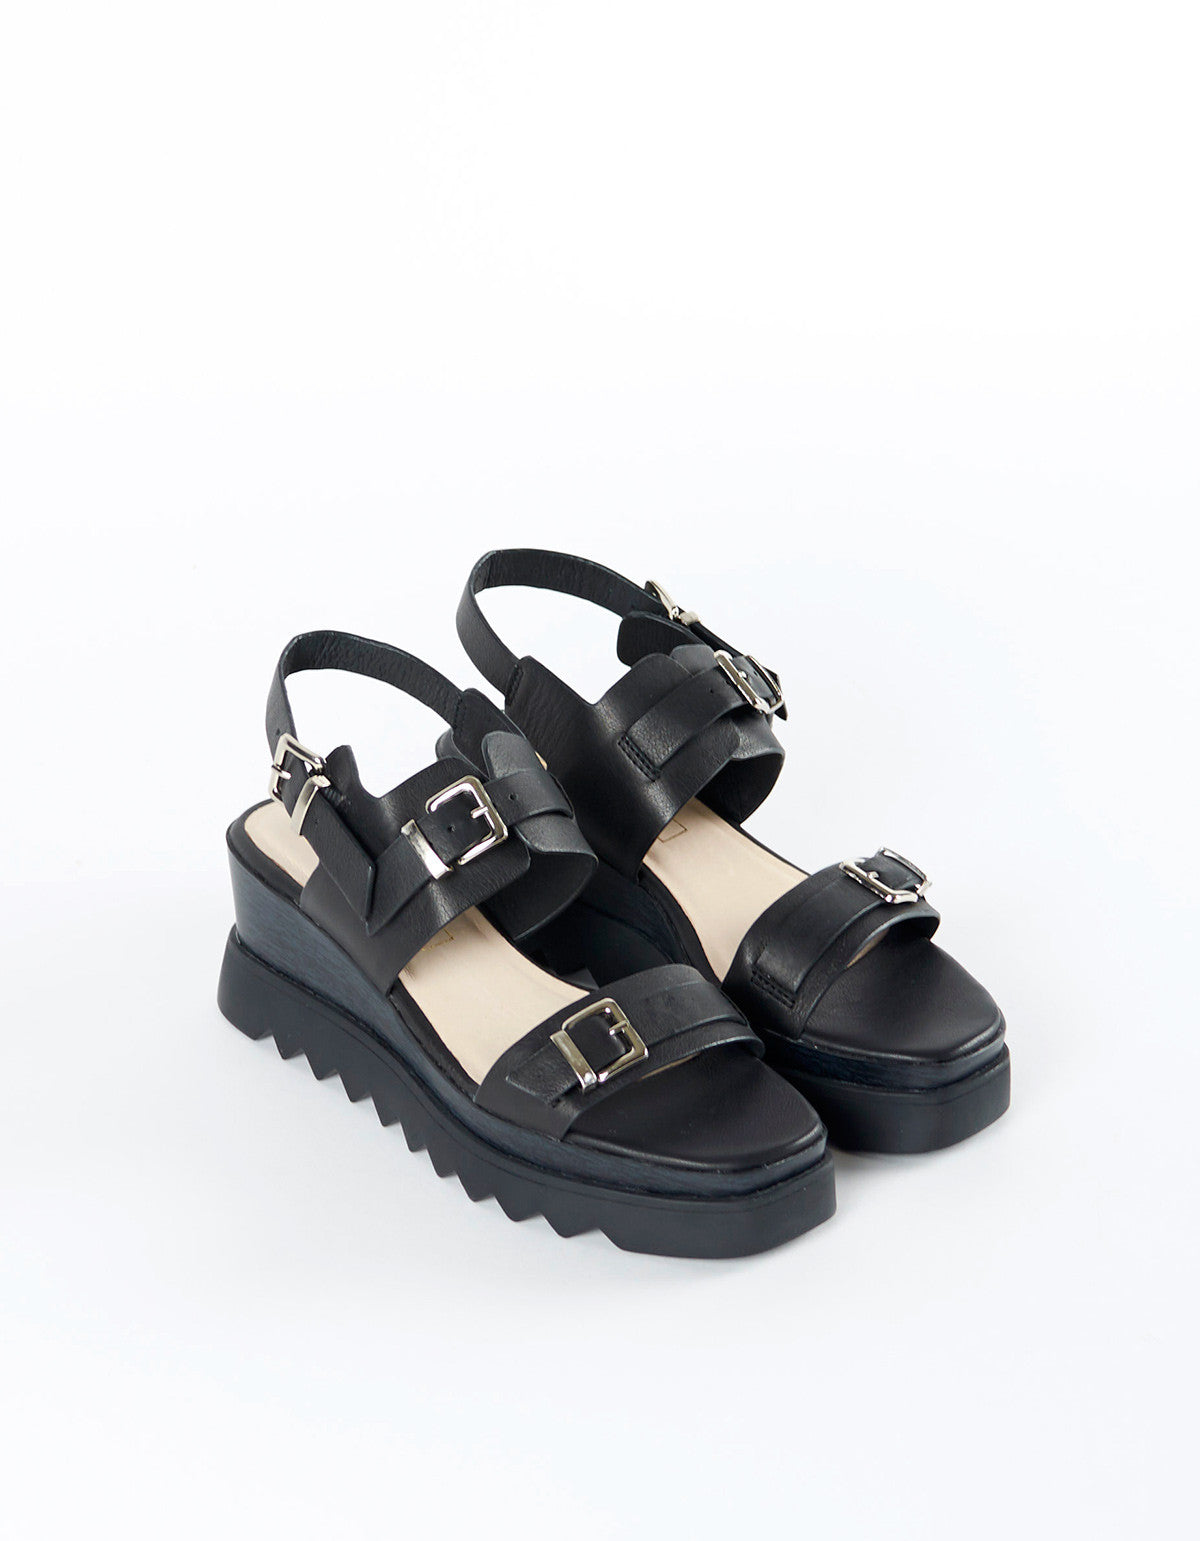 Sol Sana Gabrielle Wedge Black - Still Life - 3